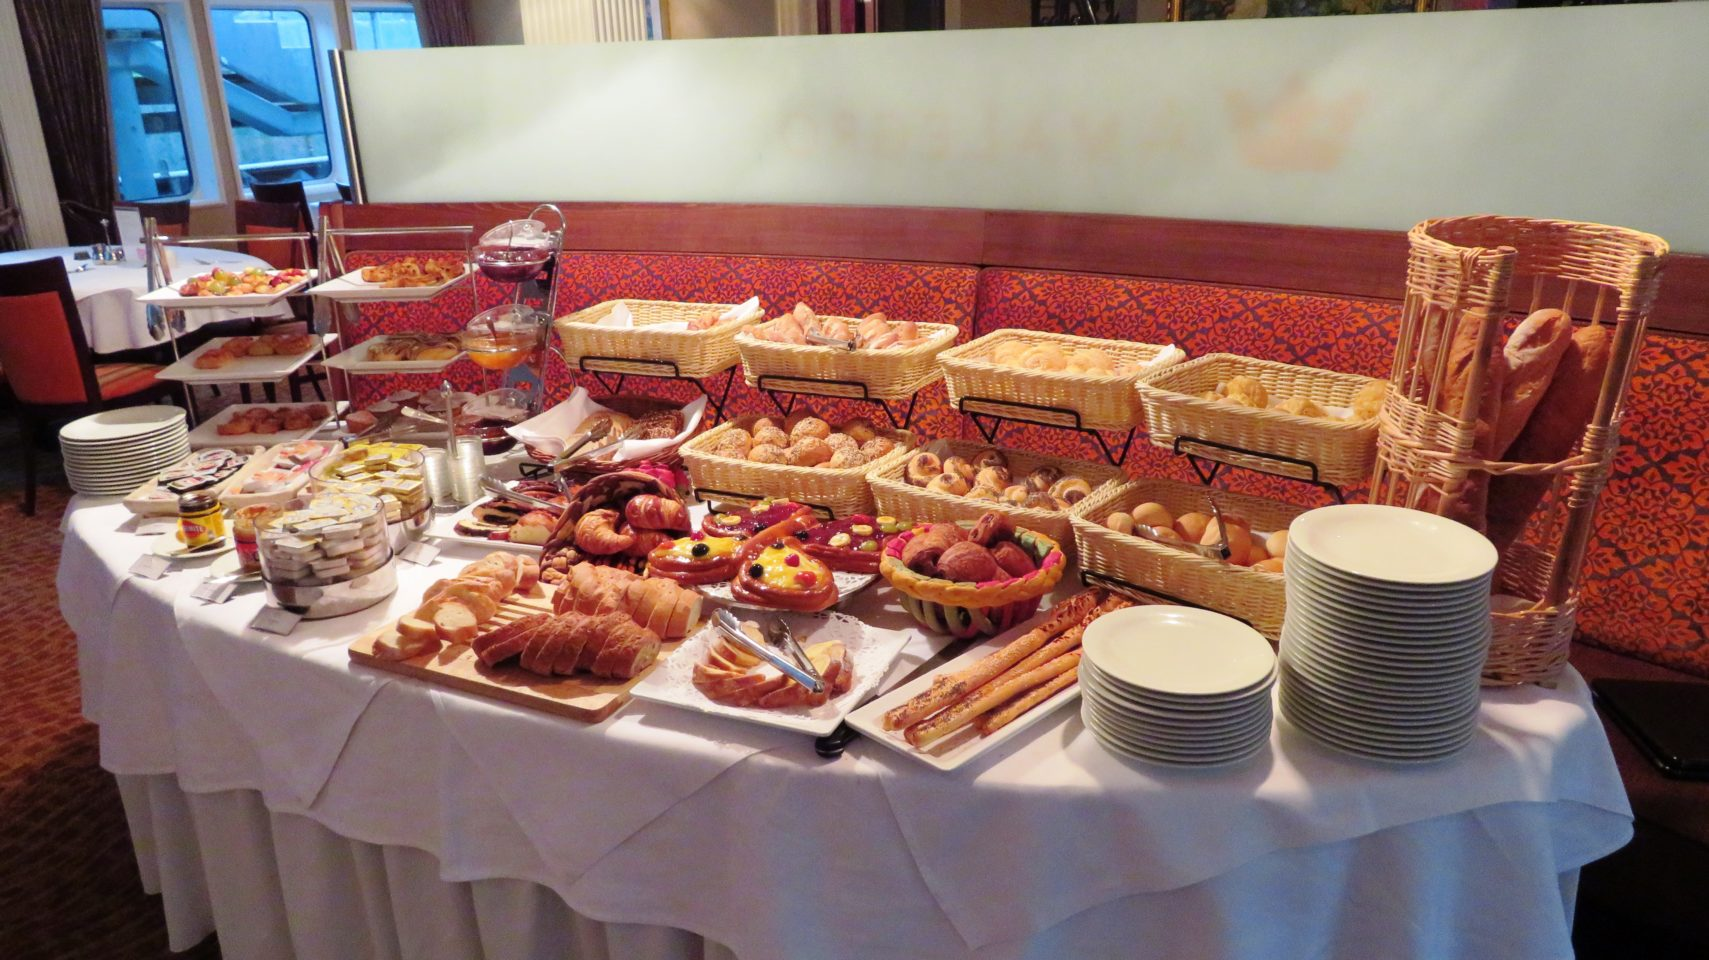 The Bread Table section of the breakfast buffet aboard the AMALegro (Paris and Normandie AMAWaterways Cruise)